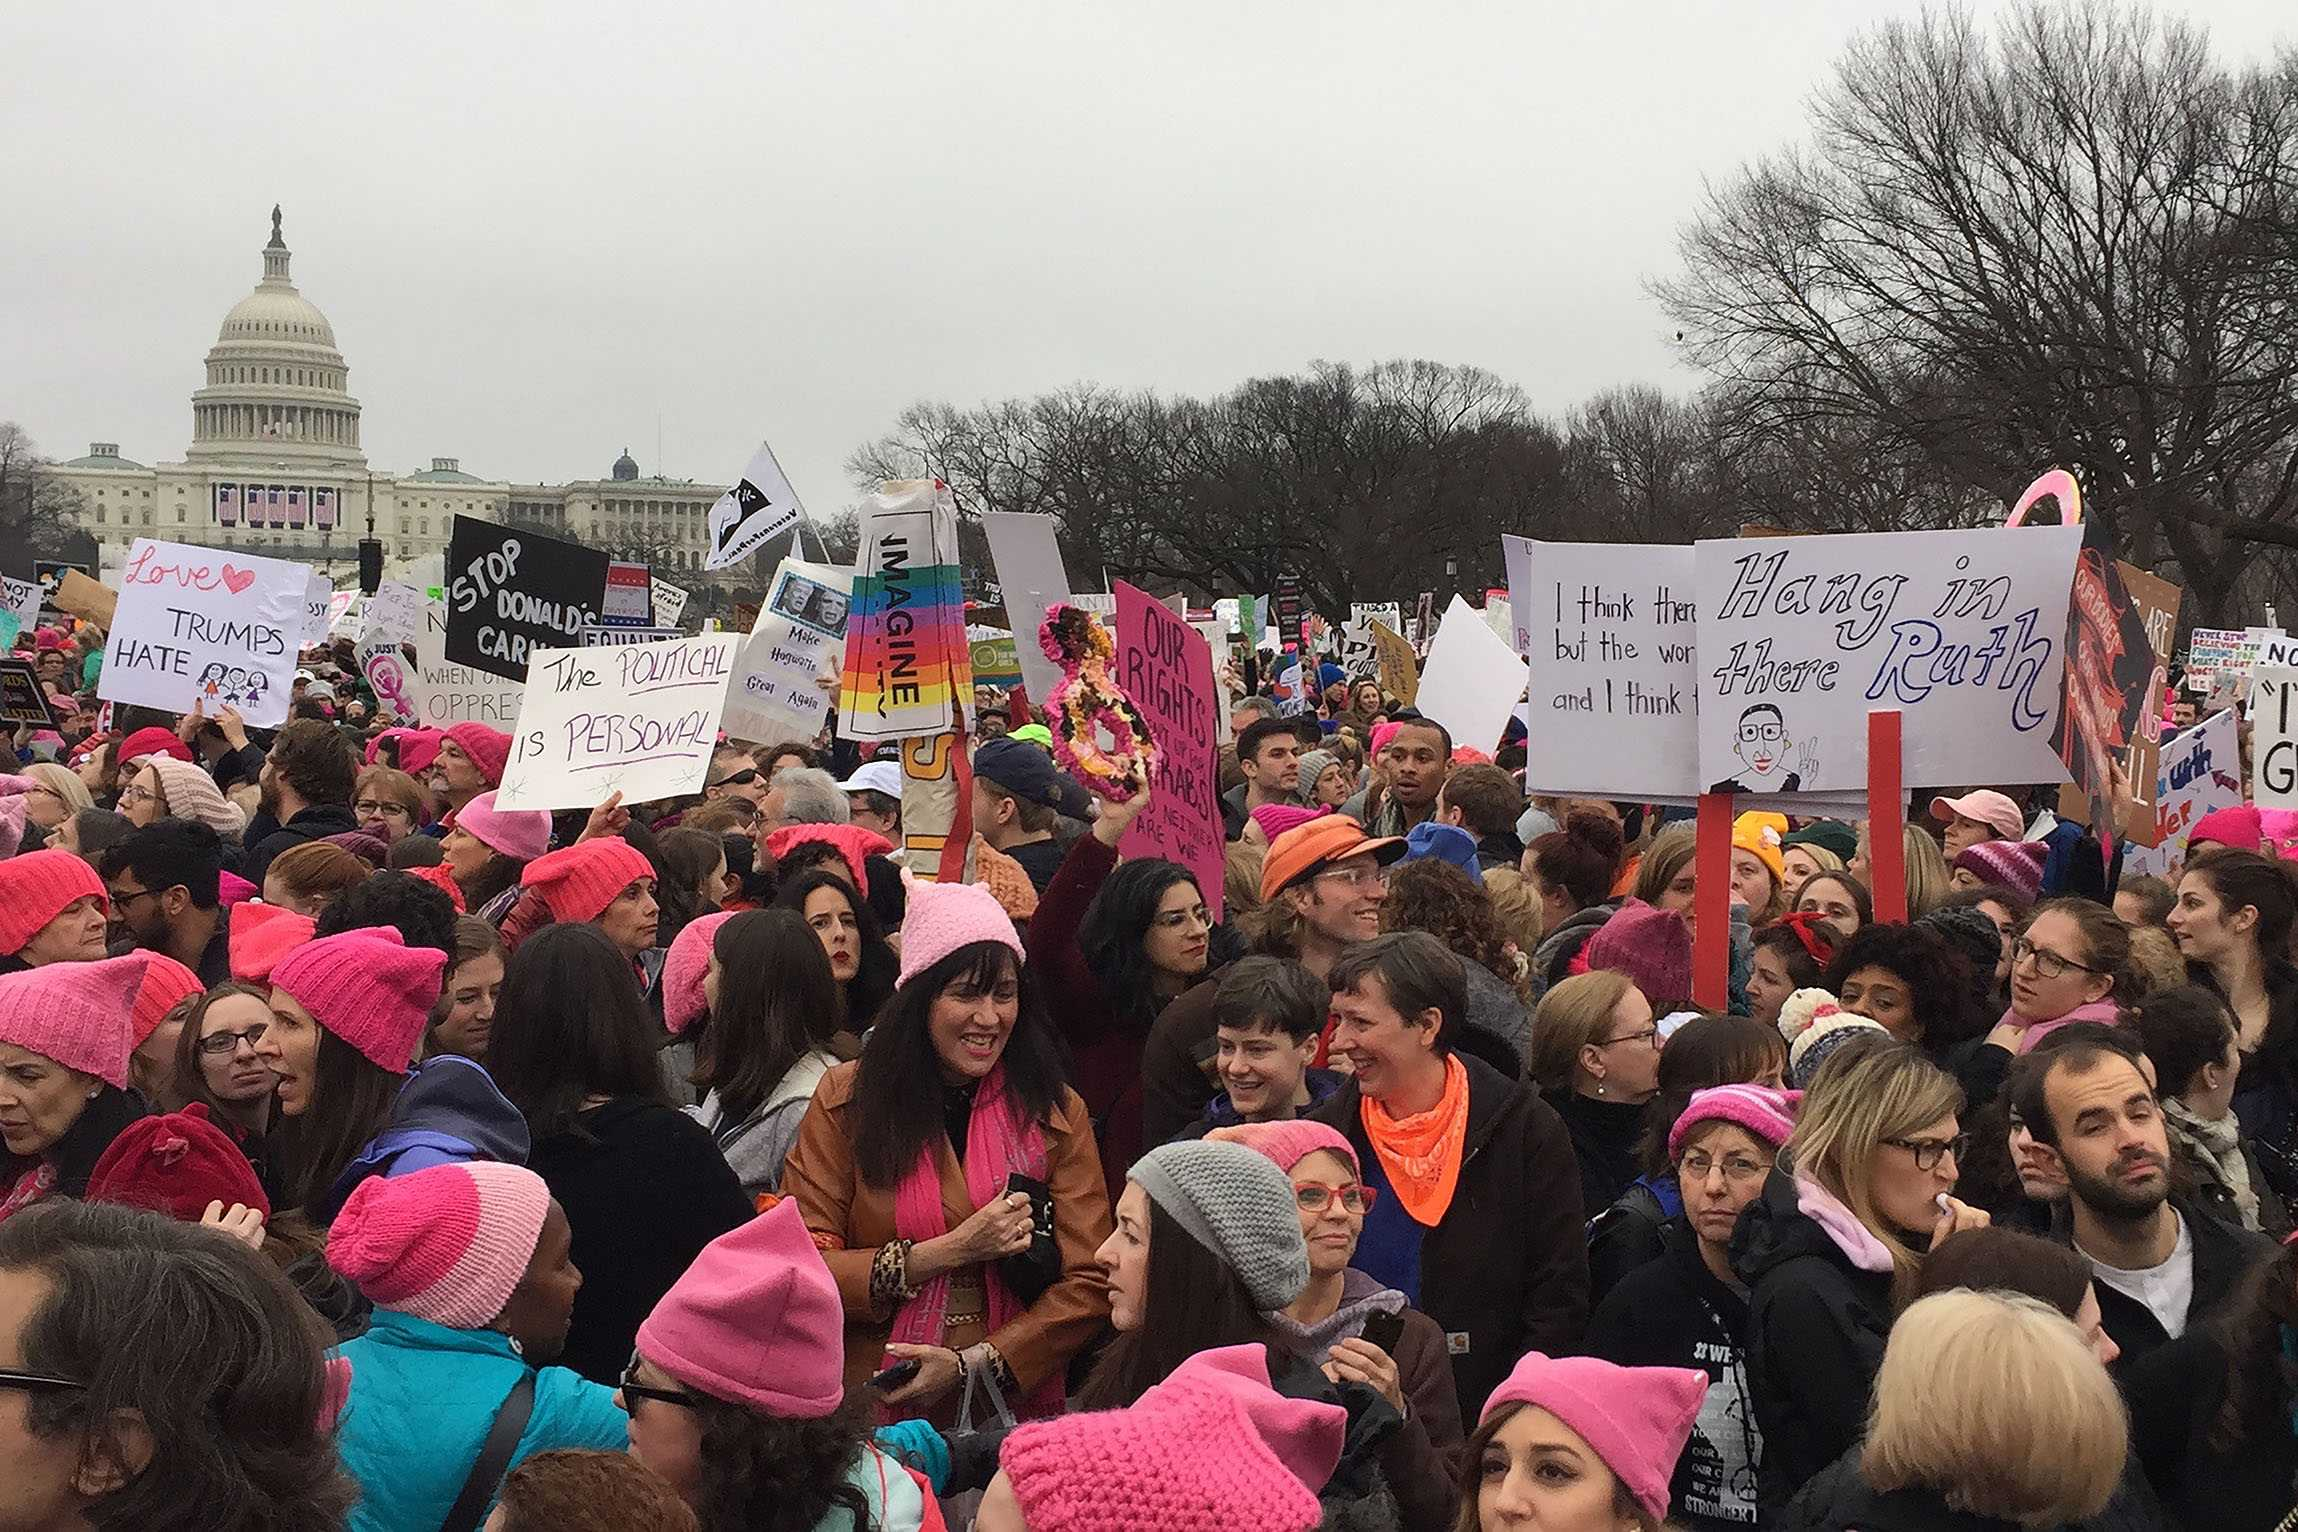 Marchers gather outside of the U.S. Capitol during the Women's March in Washington, D.C. on Saturday, Jan. 21. An estimated 470,000 people attended the march in D.C., and an estimated five million people attended the 673 sister marches across the world.